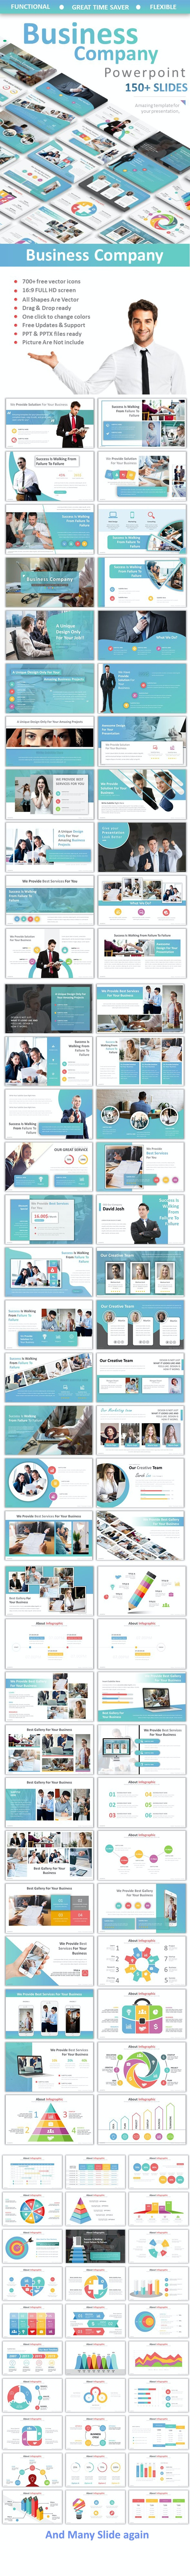 Business Company Powerpoint - Business PowerPoint Templates